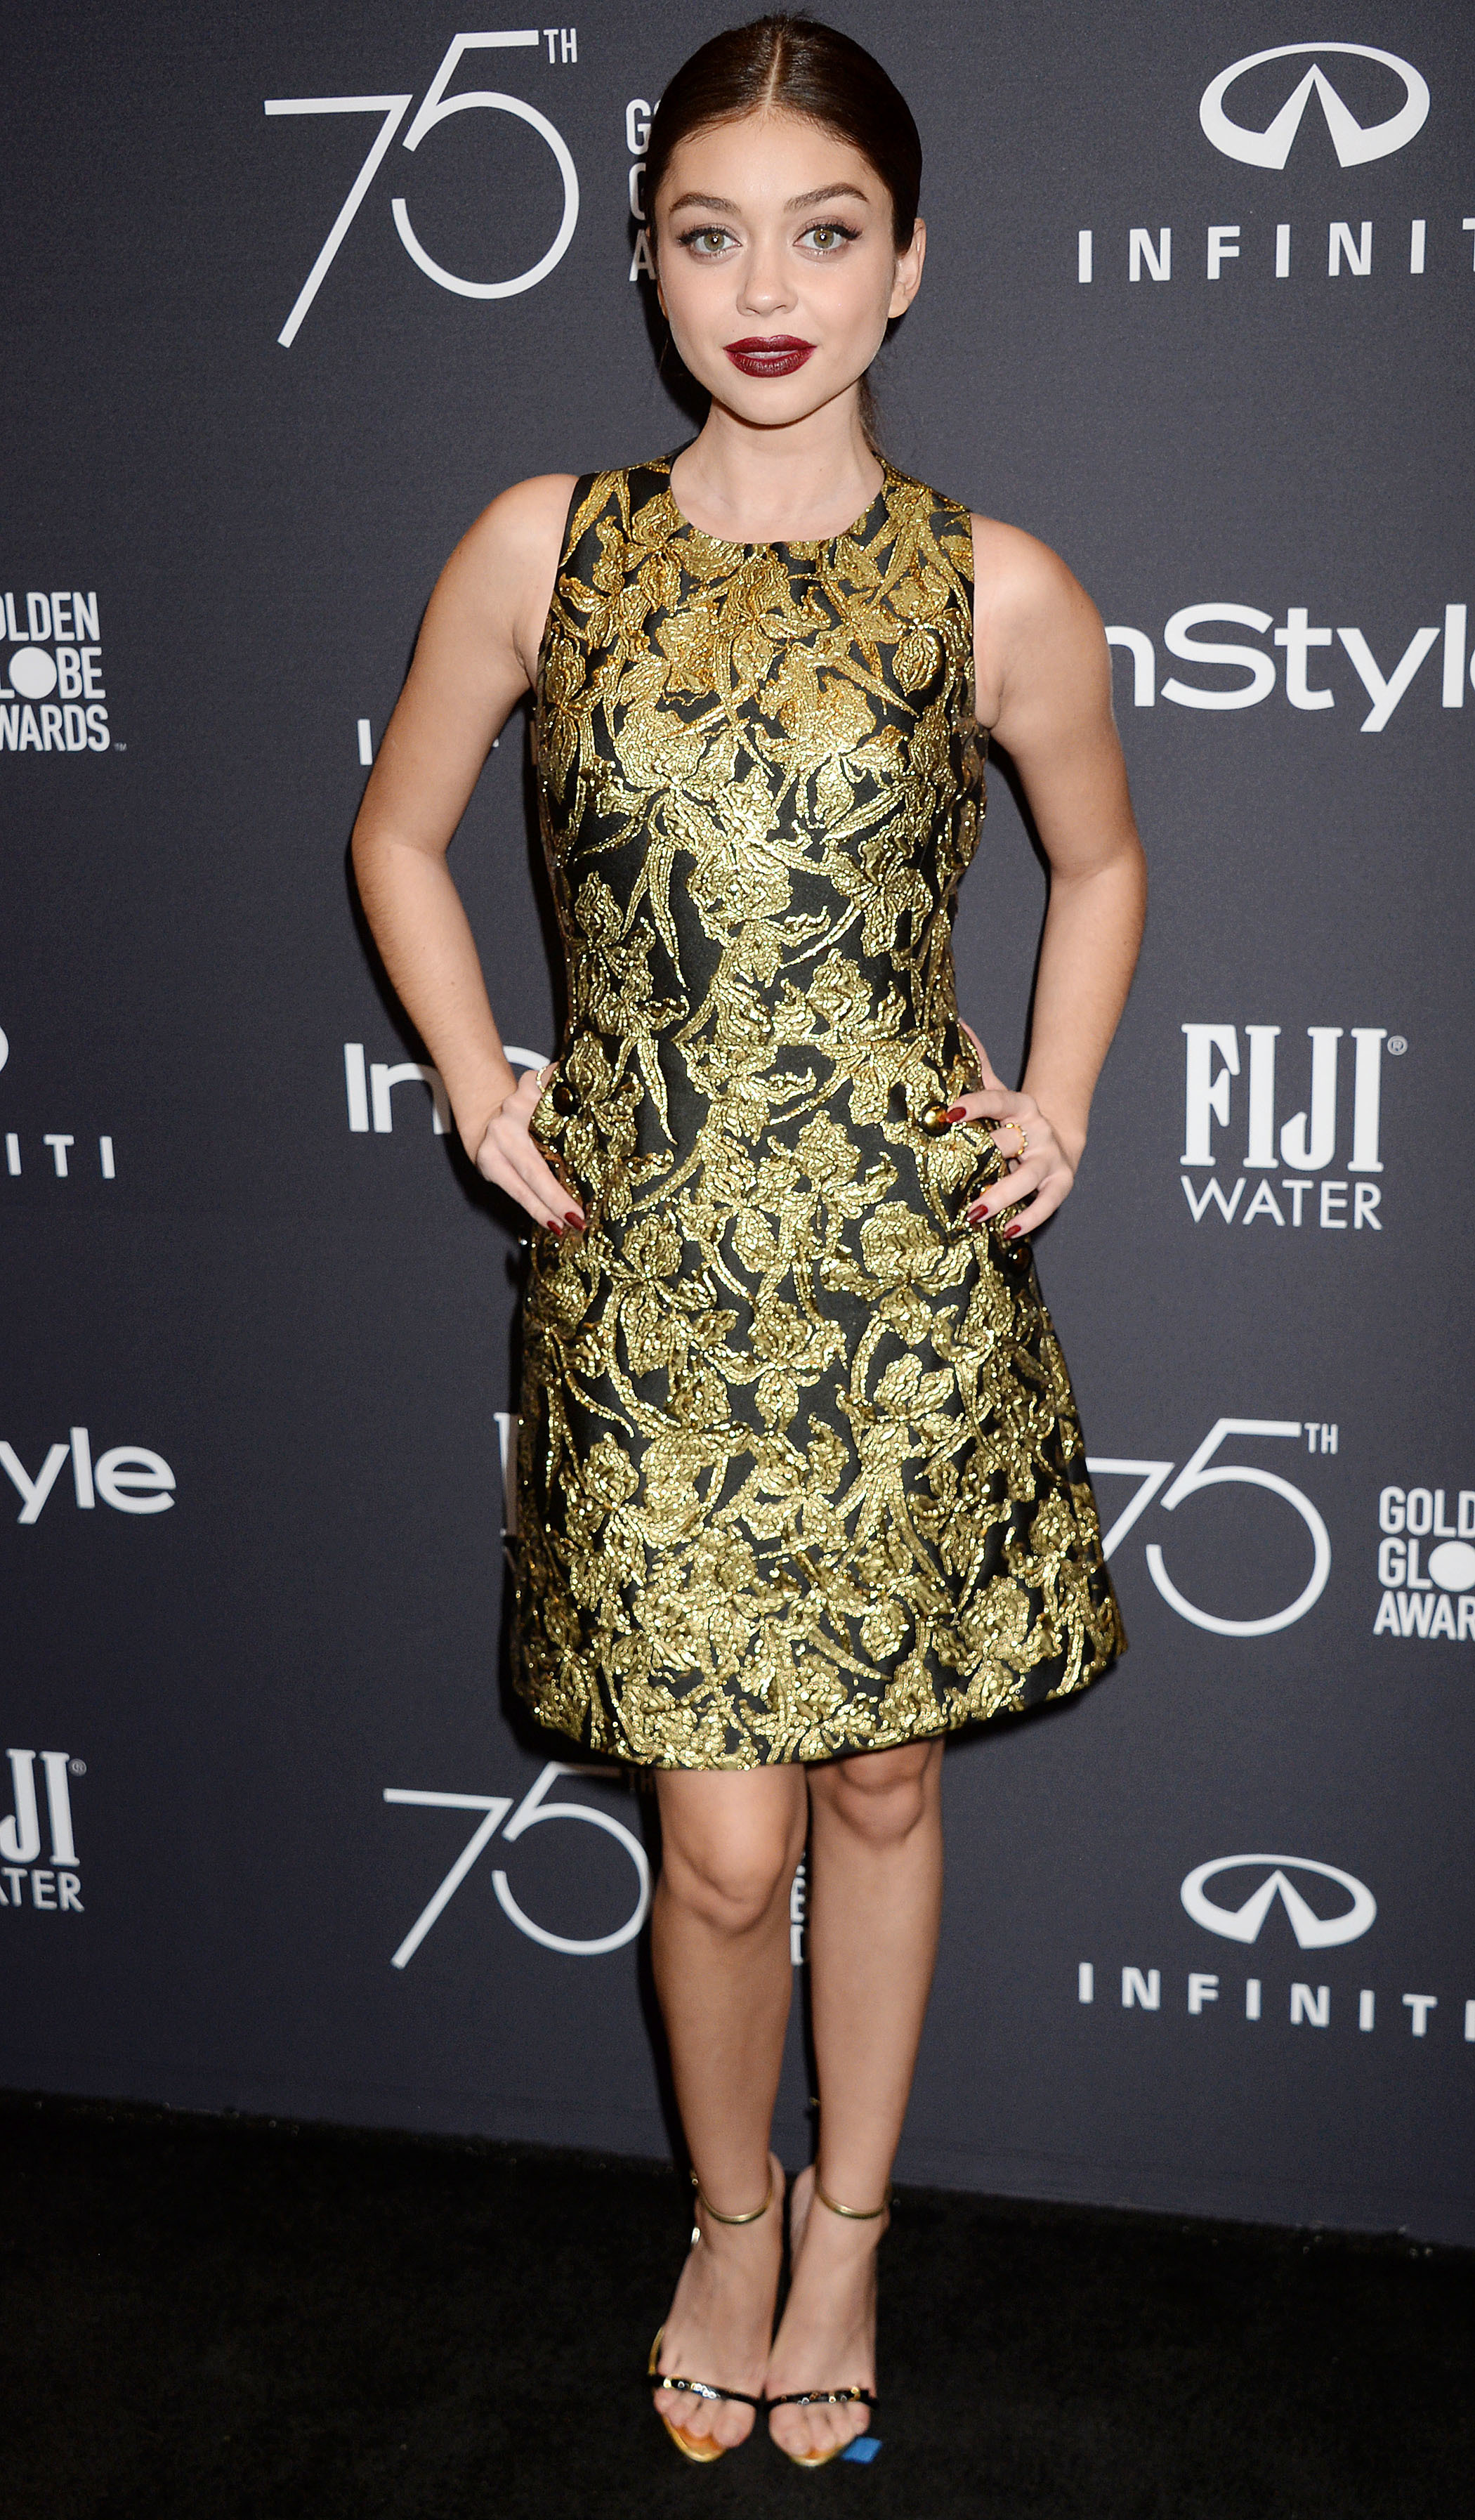 Sarah Hyland attends the HFPA and InStyle celebrate Golden Globe Season in Los Angeles on Nov. 15, 2017.